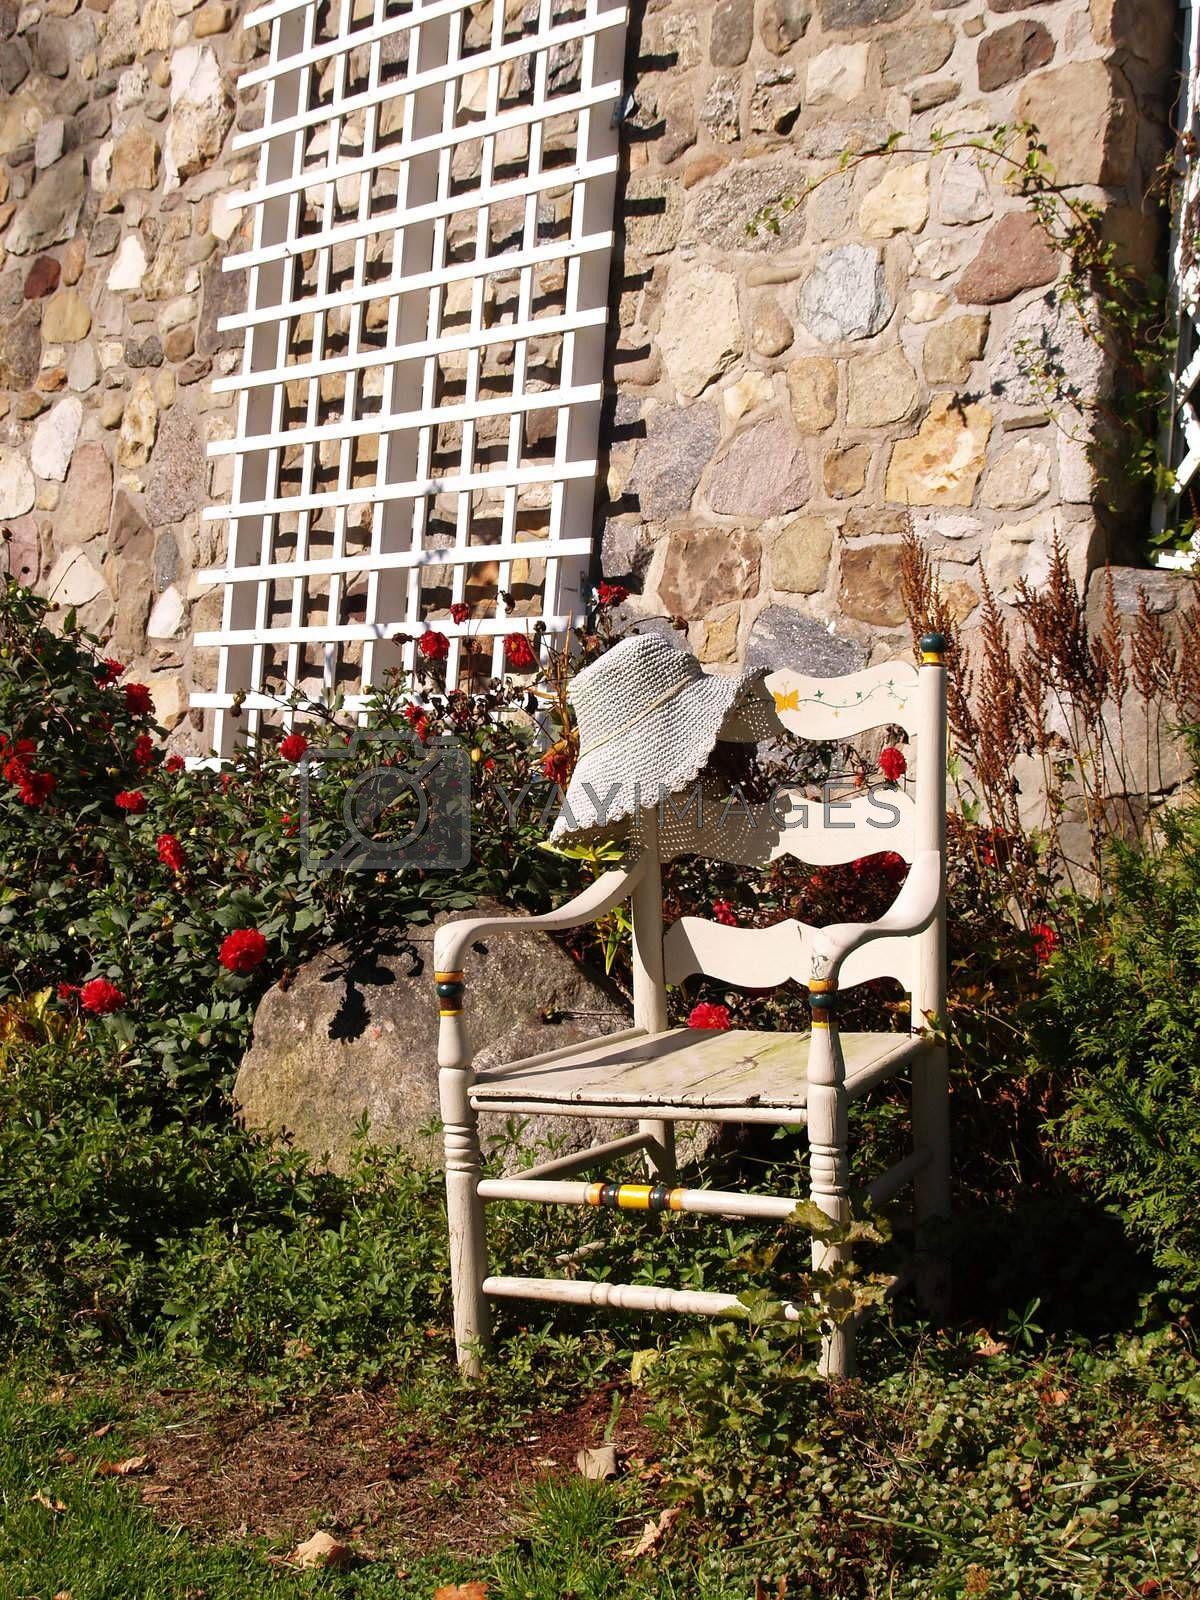 empty white chair outdoors by a stone building